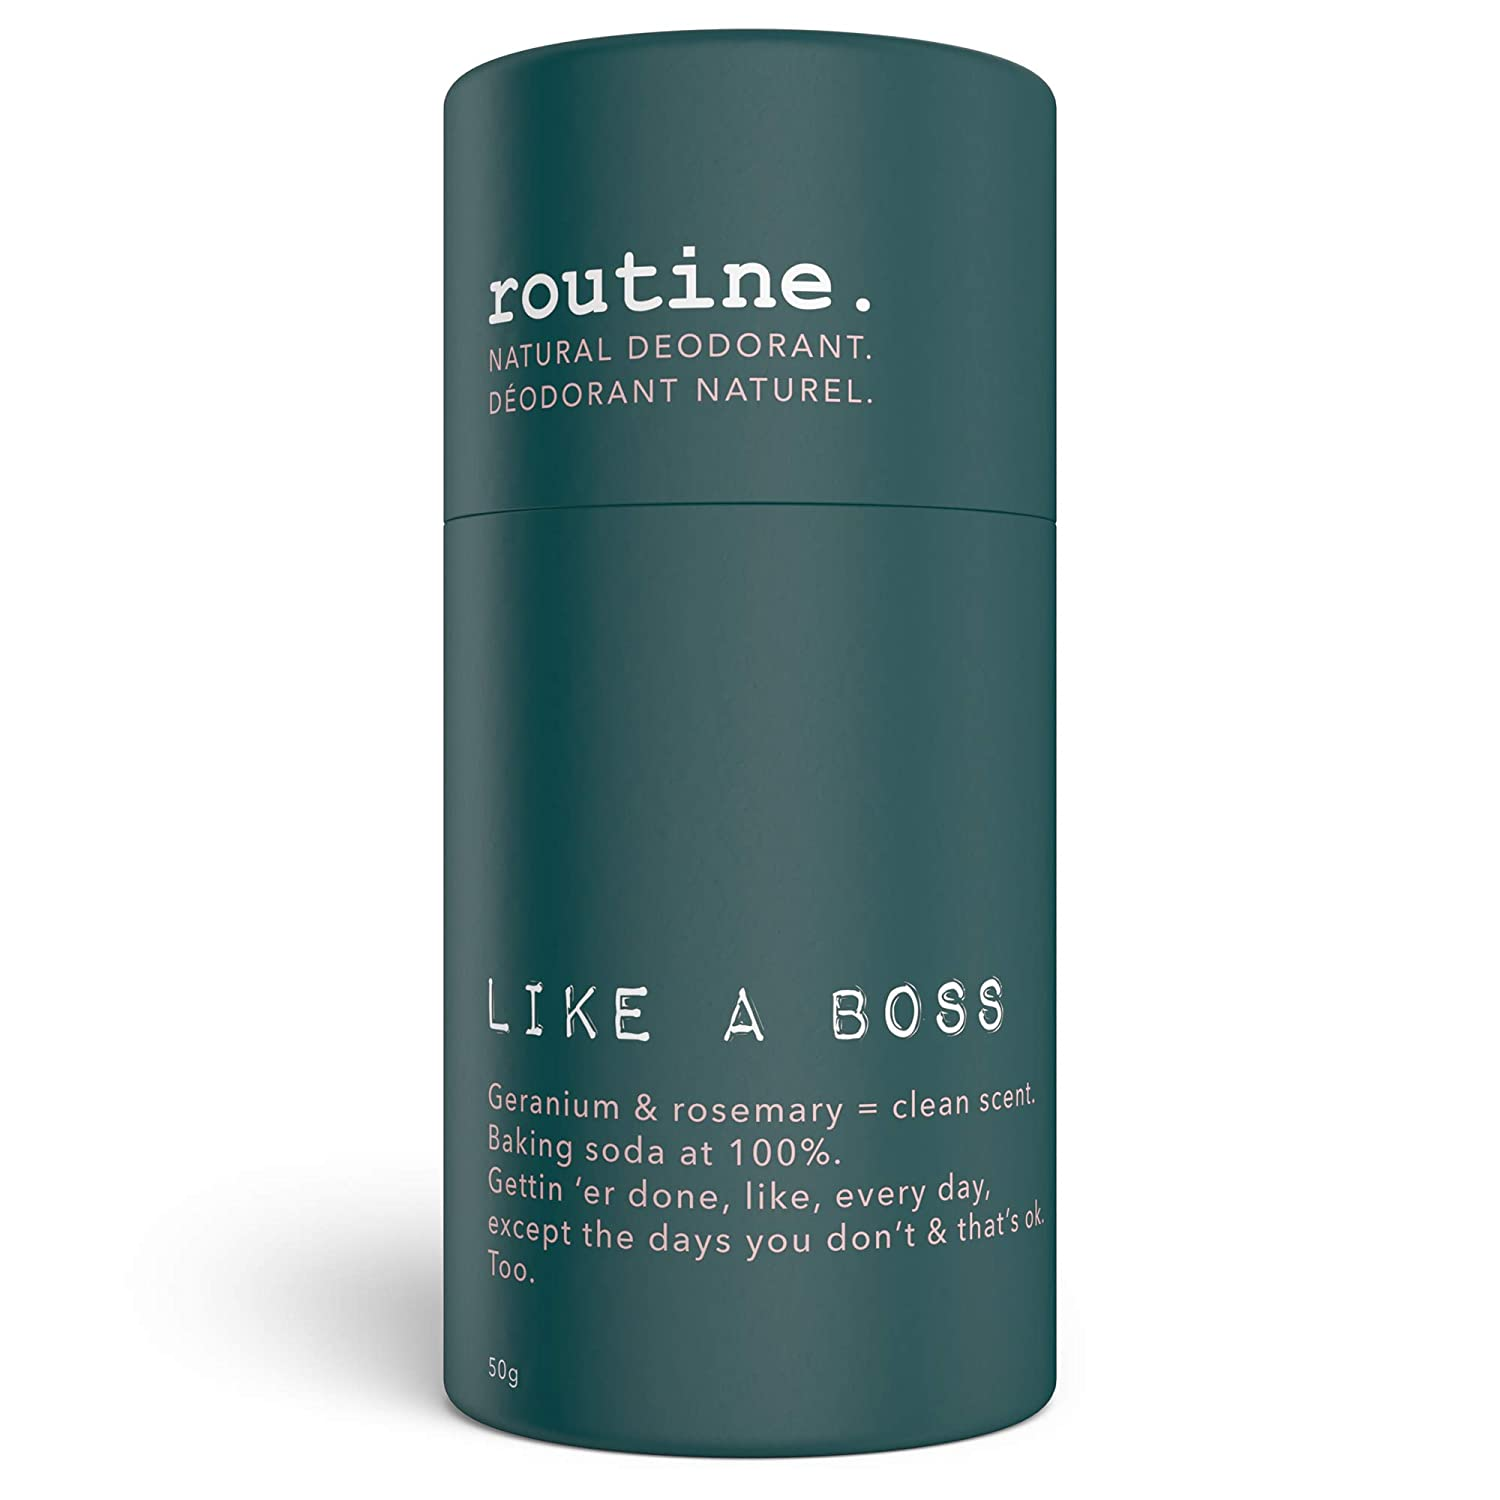 ROUTINE Like a Boss - New Shipping Free Shipping All Stick Maximum 50g Charlotte Mall Deodorant Natural